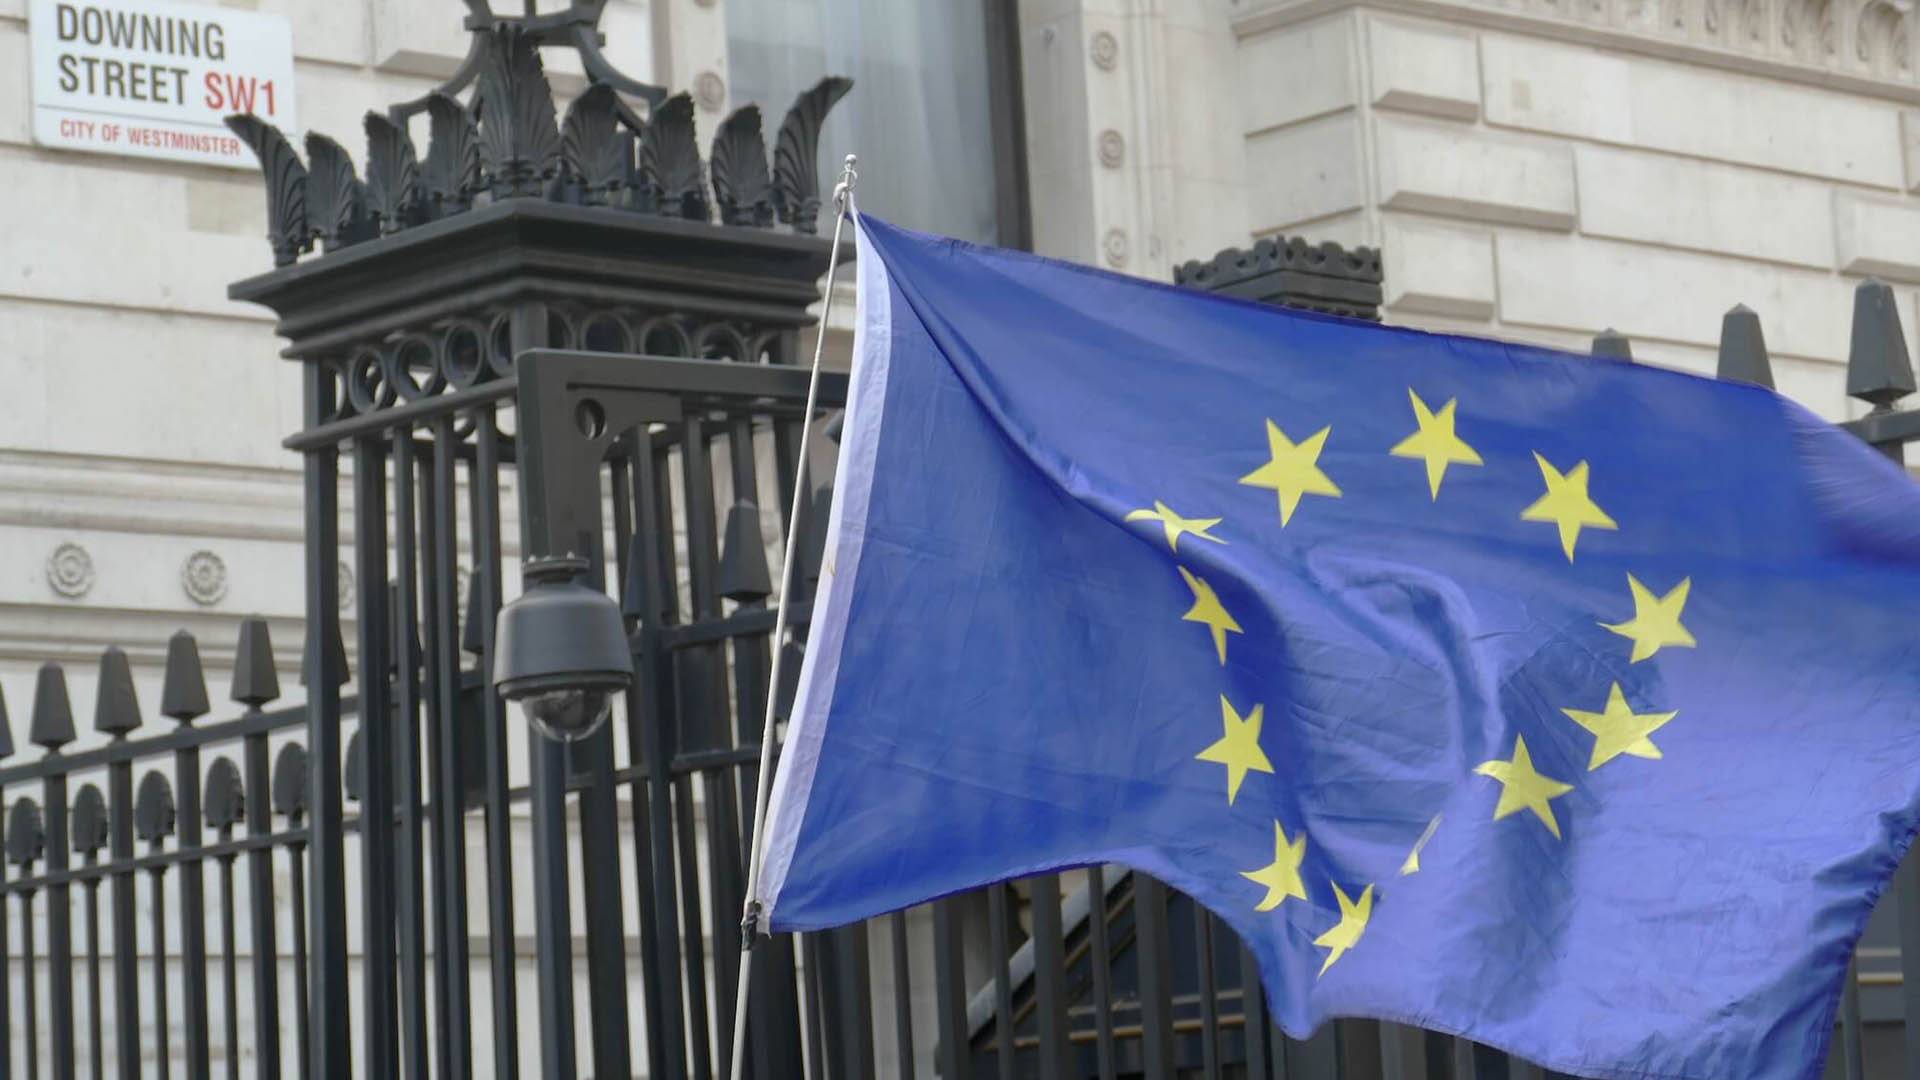 How will Brexit affect businesses?